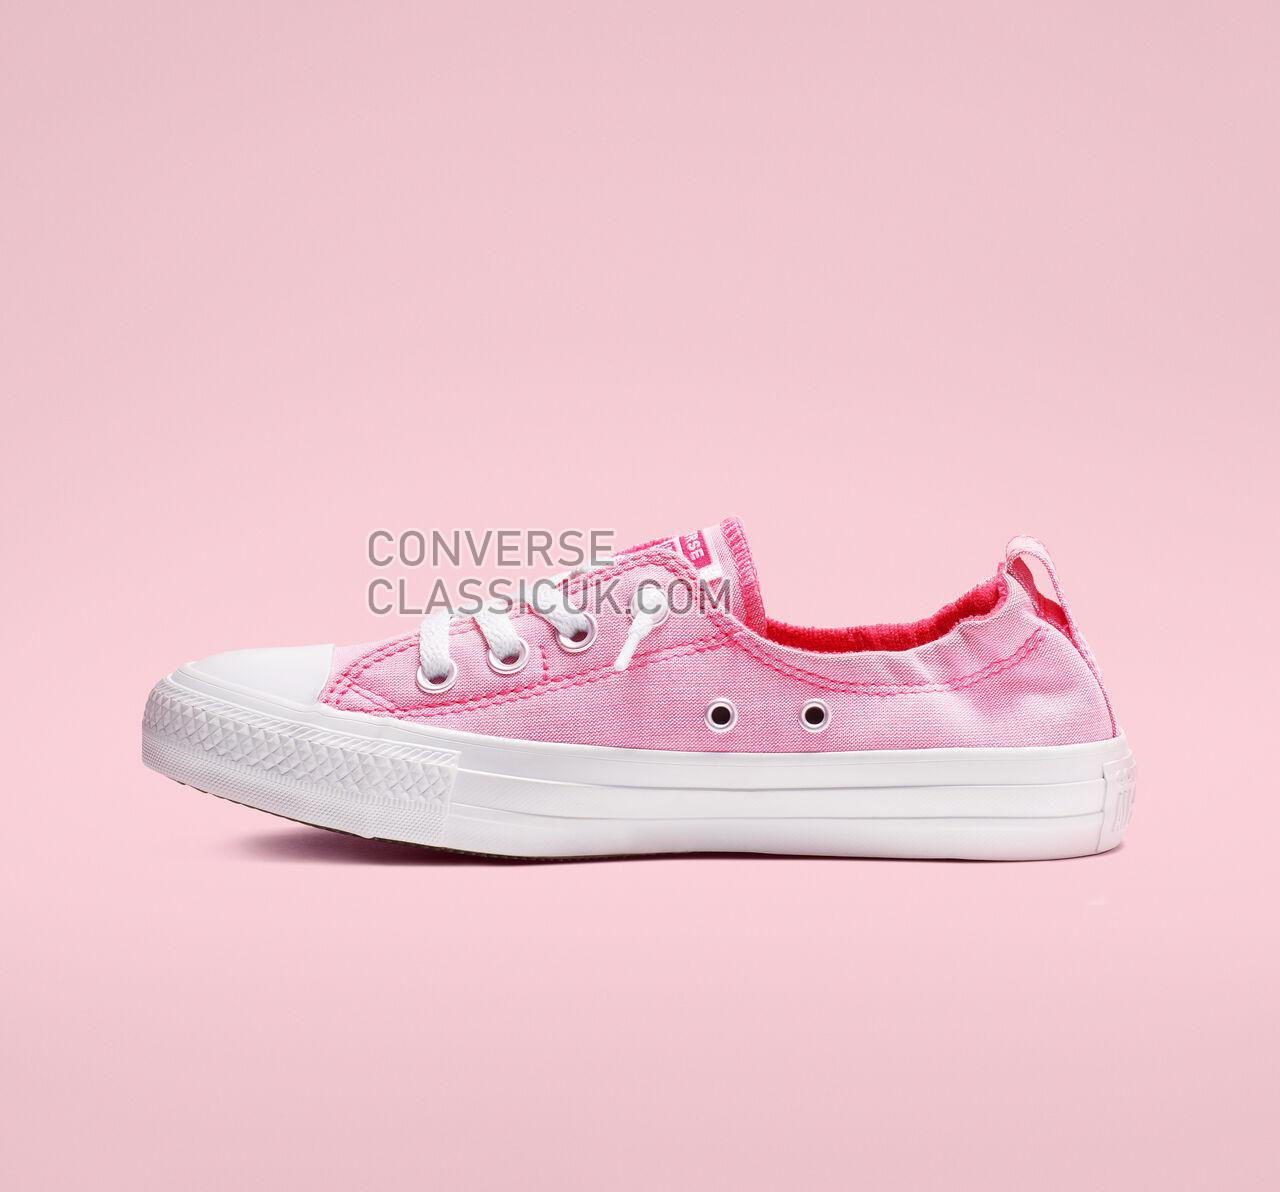 Converse Chuck Taylor All Star Shoreline Slip Womens 564337F Racer Pink/White/White Shoes